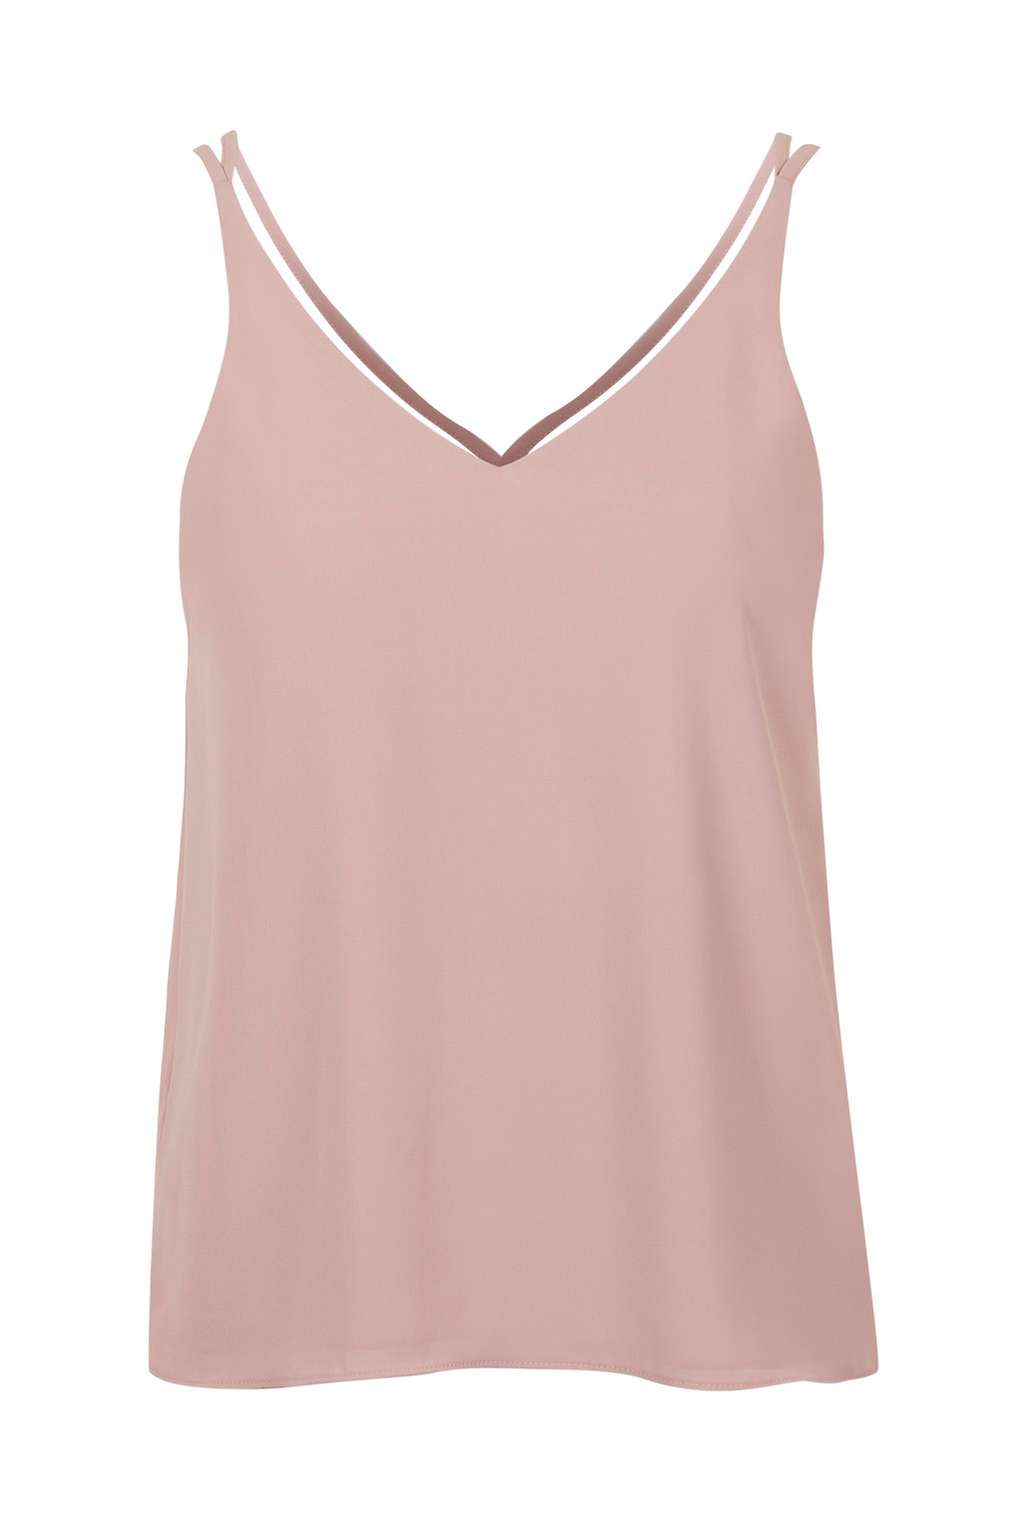 2d6d6db8e7aa TOPSHOP Double Strap V-front Cami in Pink - Lyst